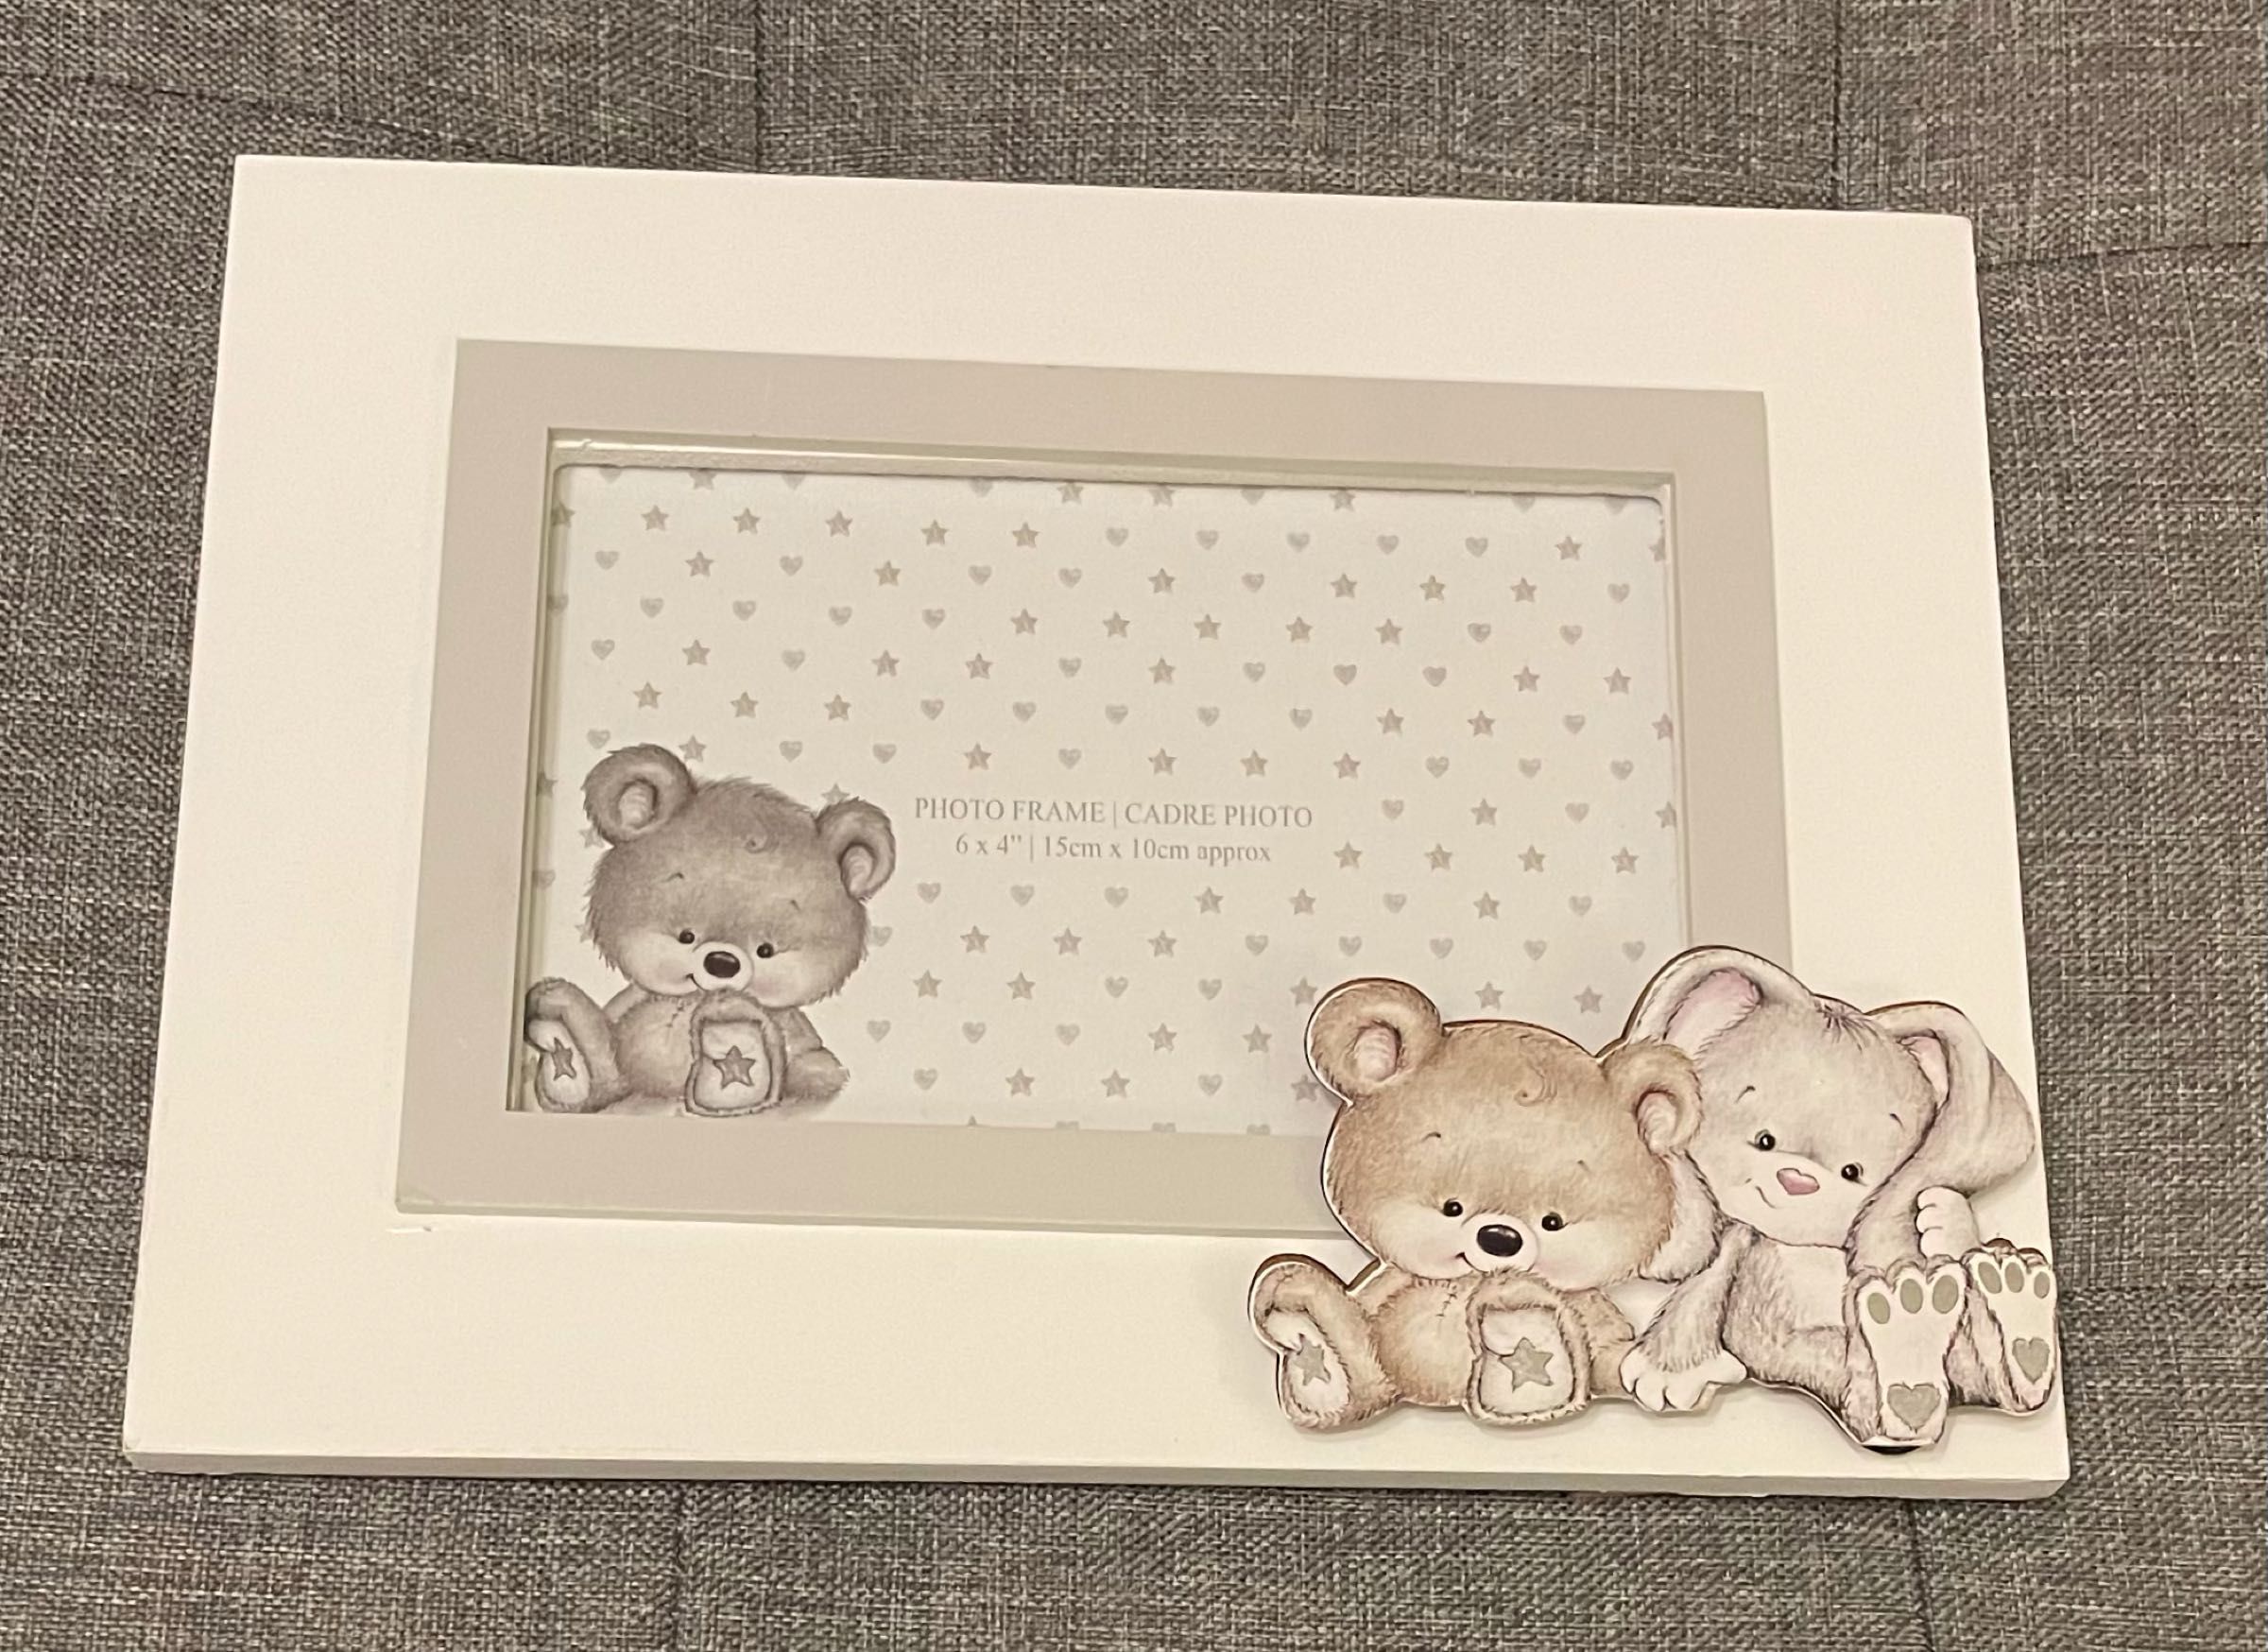 6x4 natural baby photo frame (can be engraved)